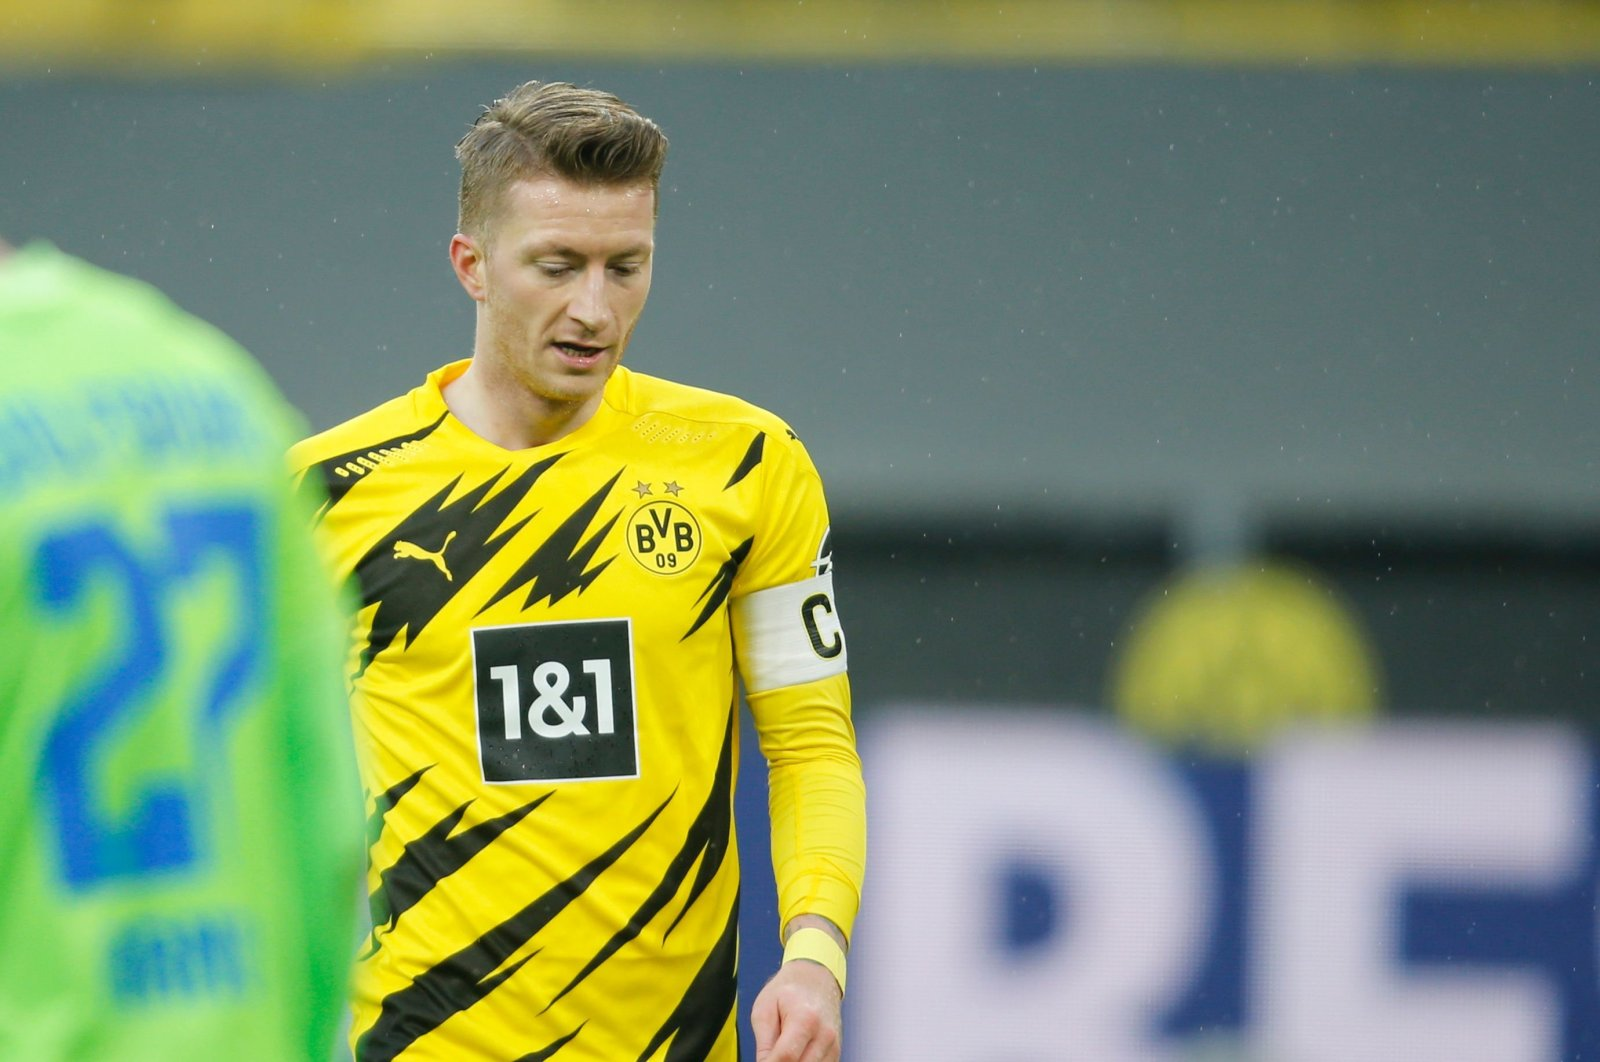 Borussia Dortmund's German forward Marco Reus reacts after failing to score during the German first division Bundesliga football match between Borussia Dortmund and VfL Wolfsburg, in Dortmund, Germany, Jan. 3, 2021. (Pool via AFP)